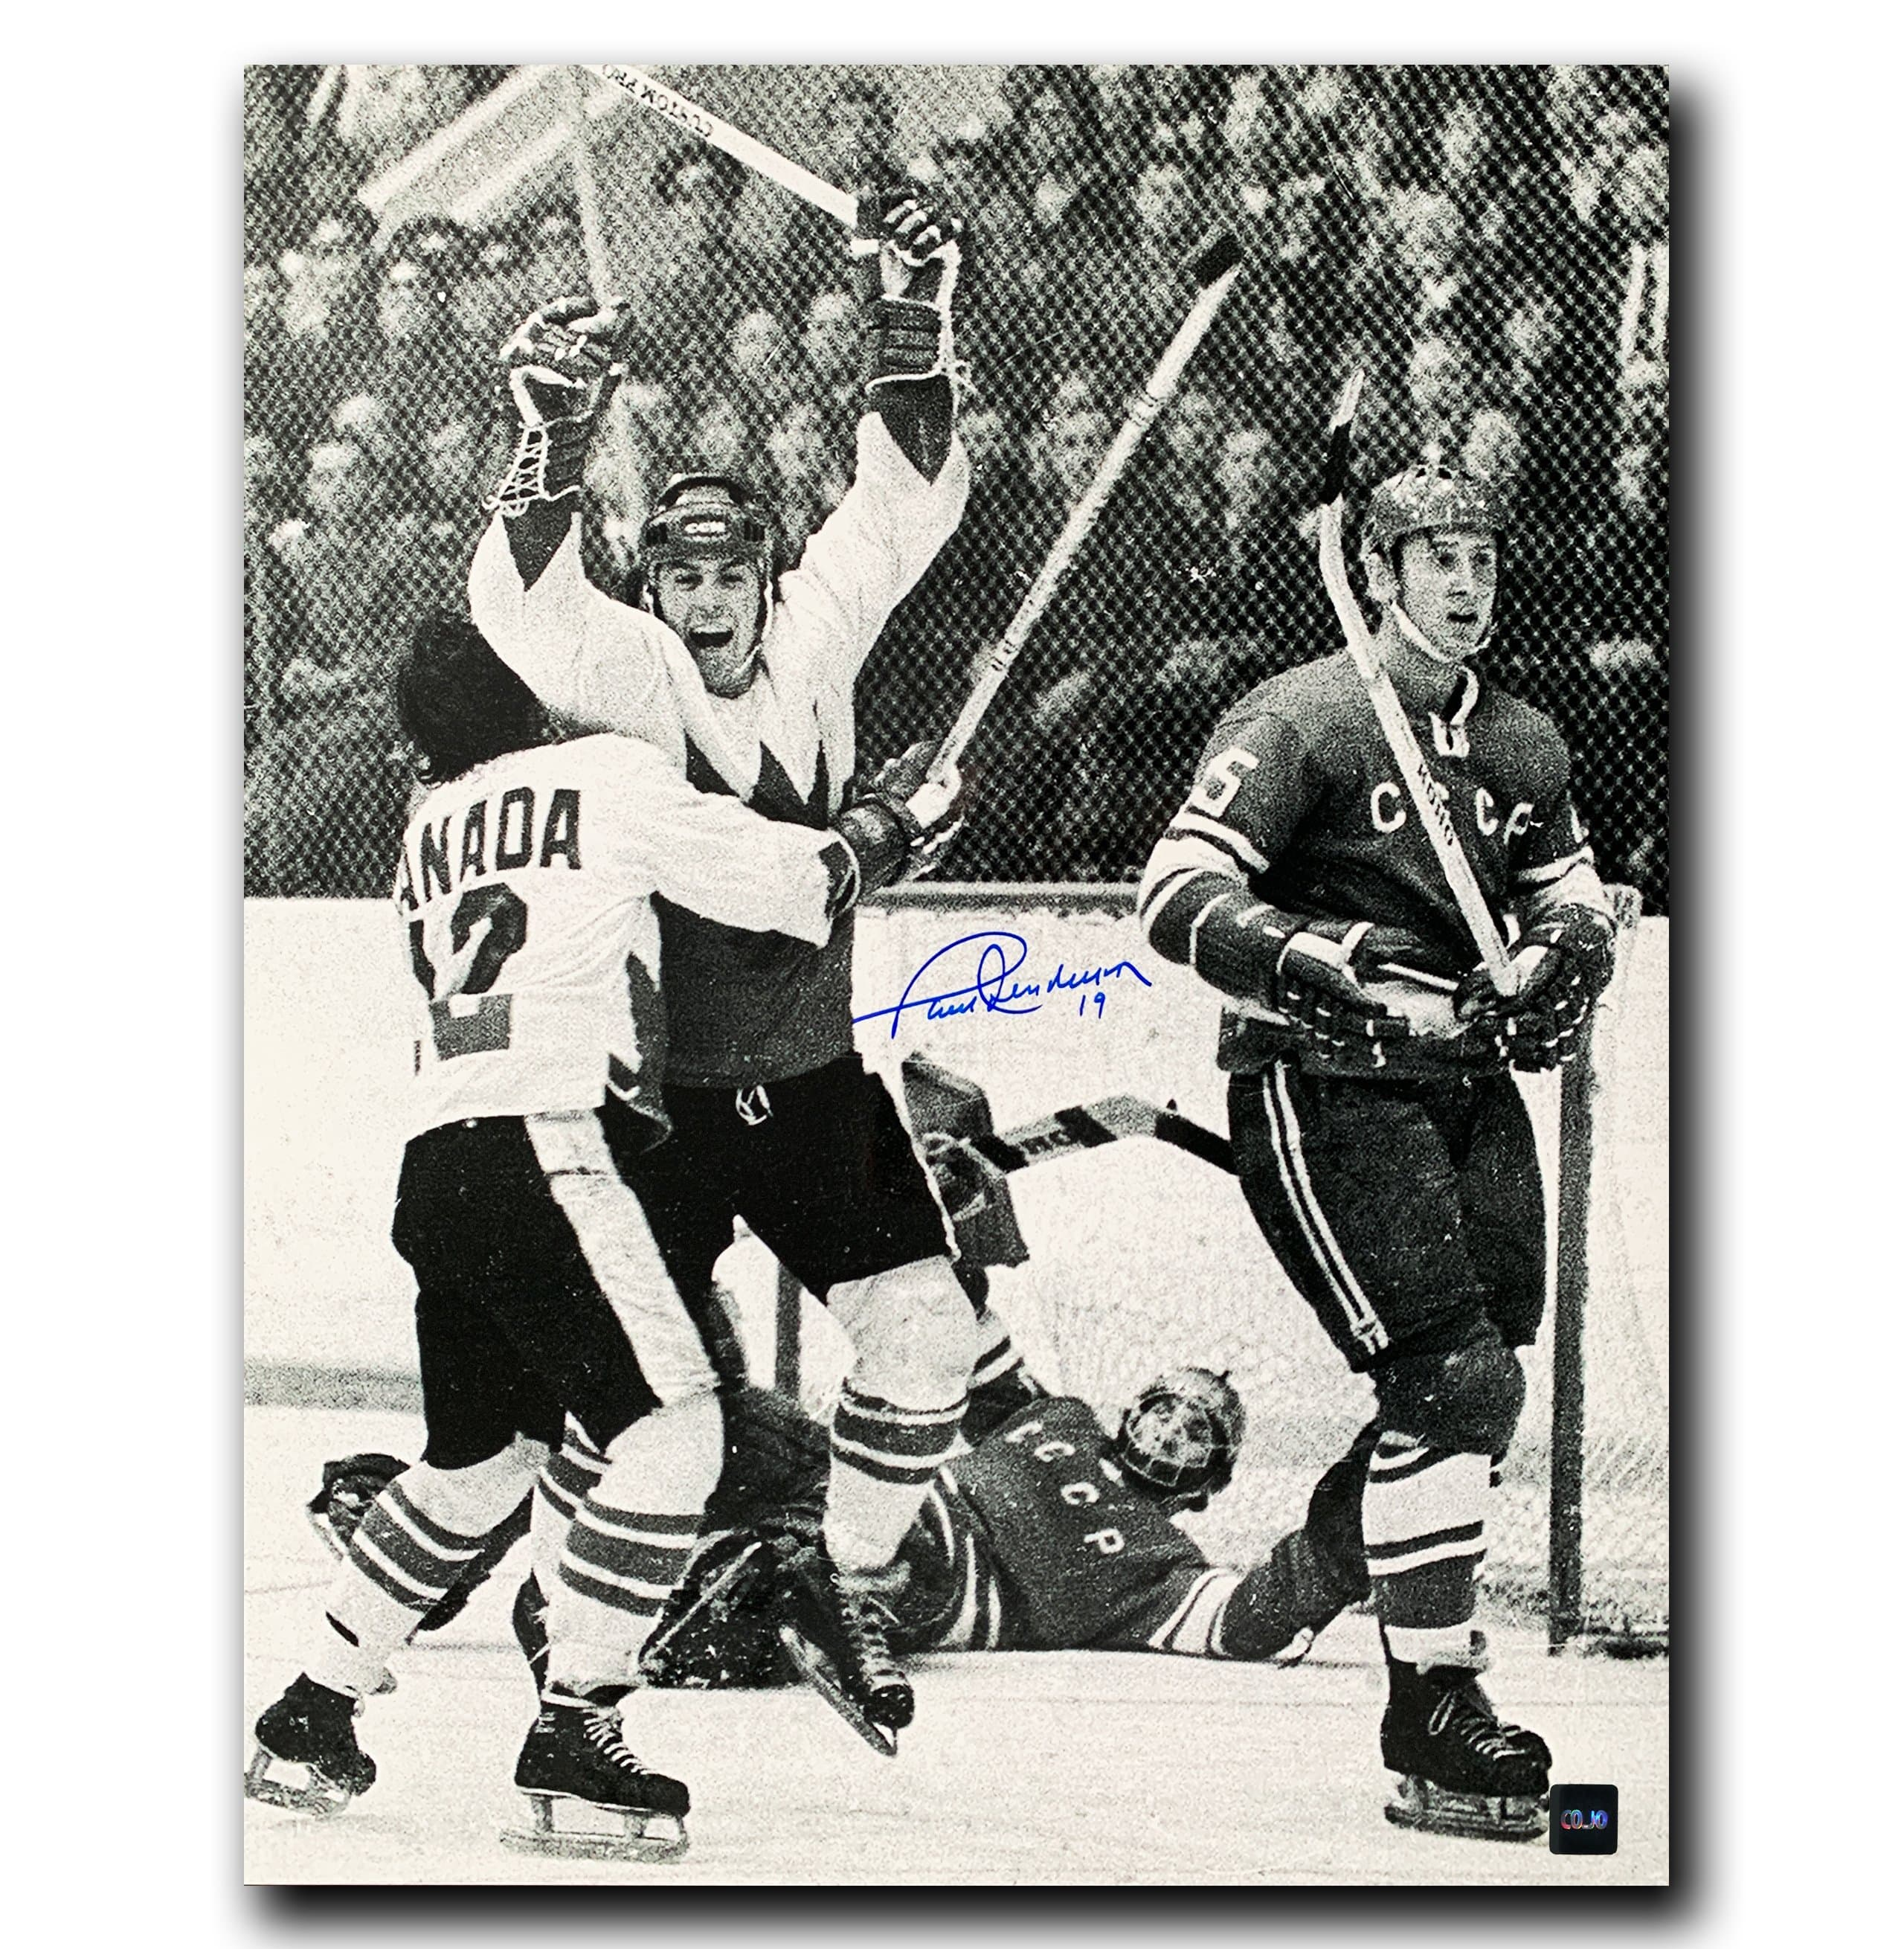 Paul Henderson 1972 Summit Series Autographed 16x20 Photo - CoJo Sport Collectables Inc.